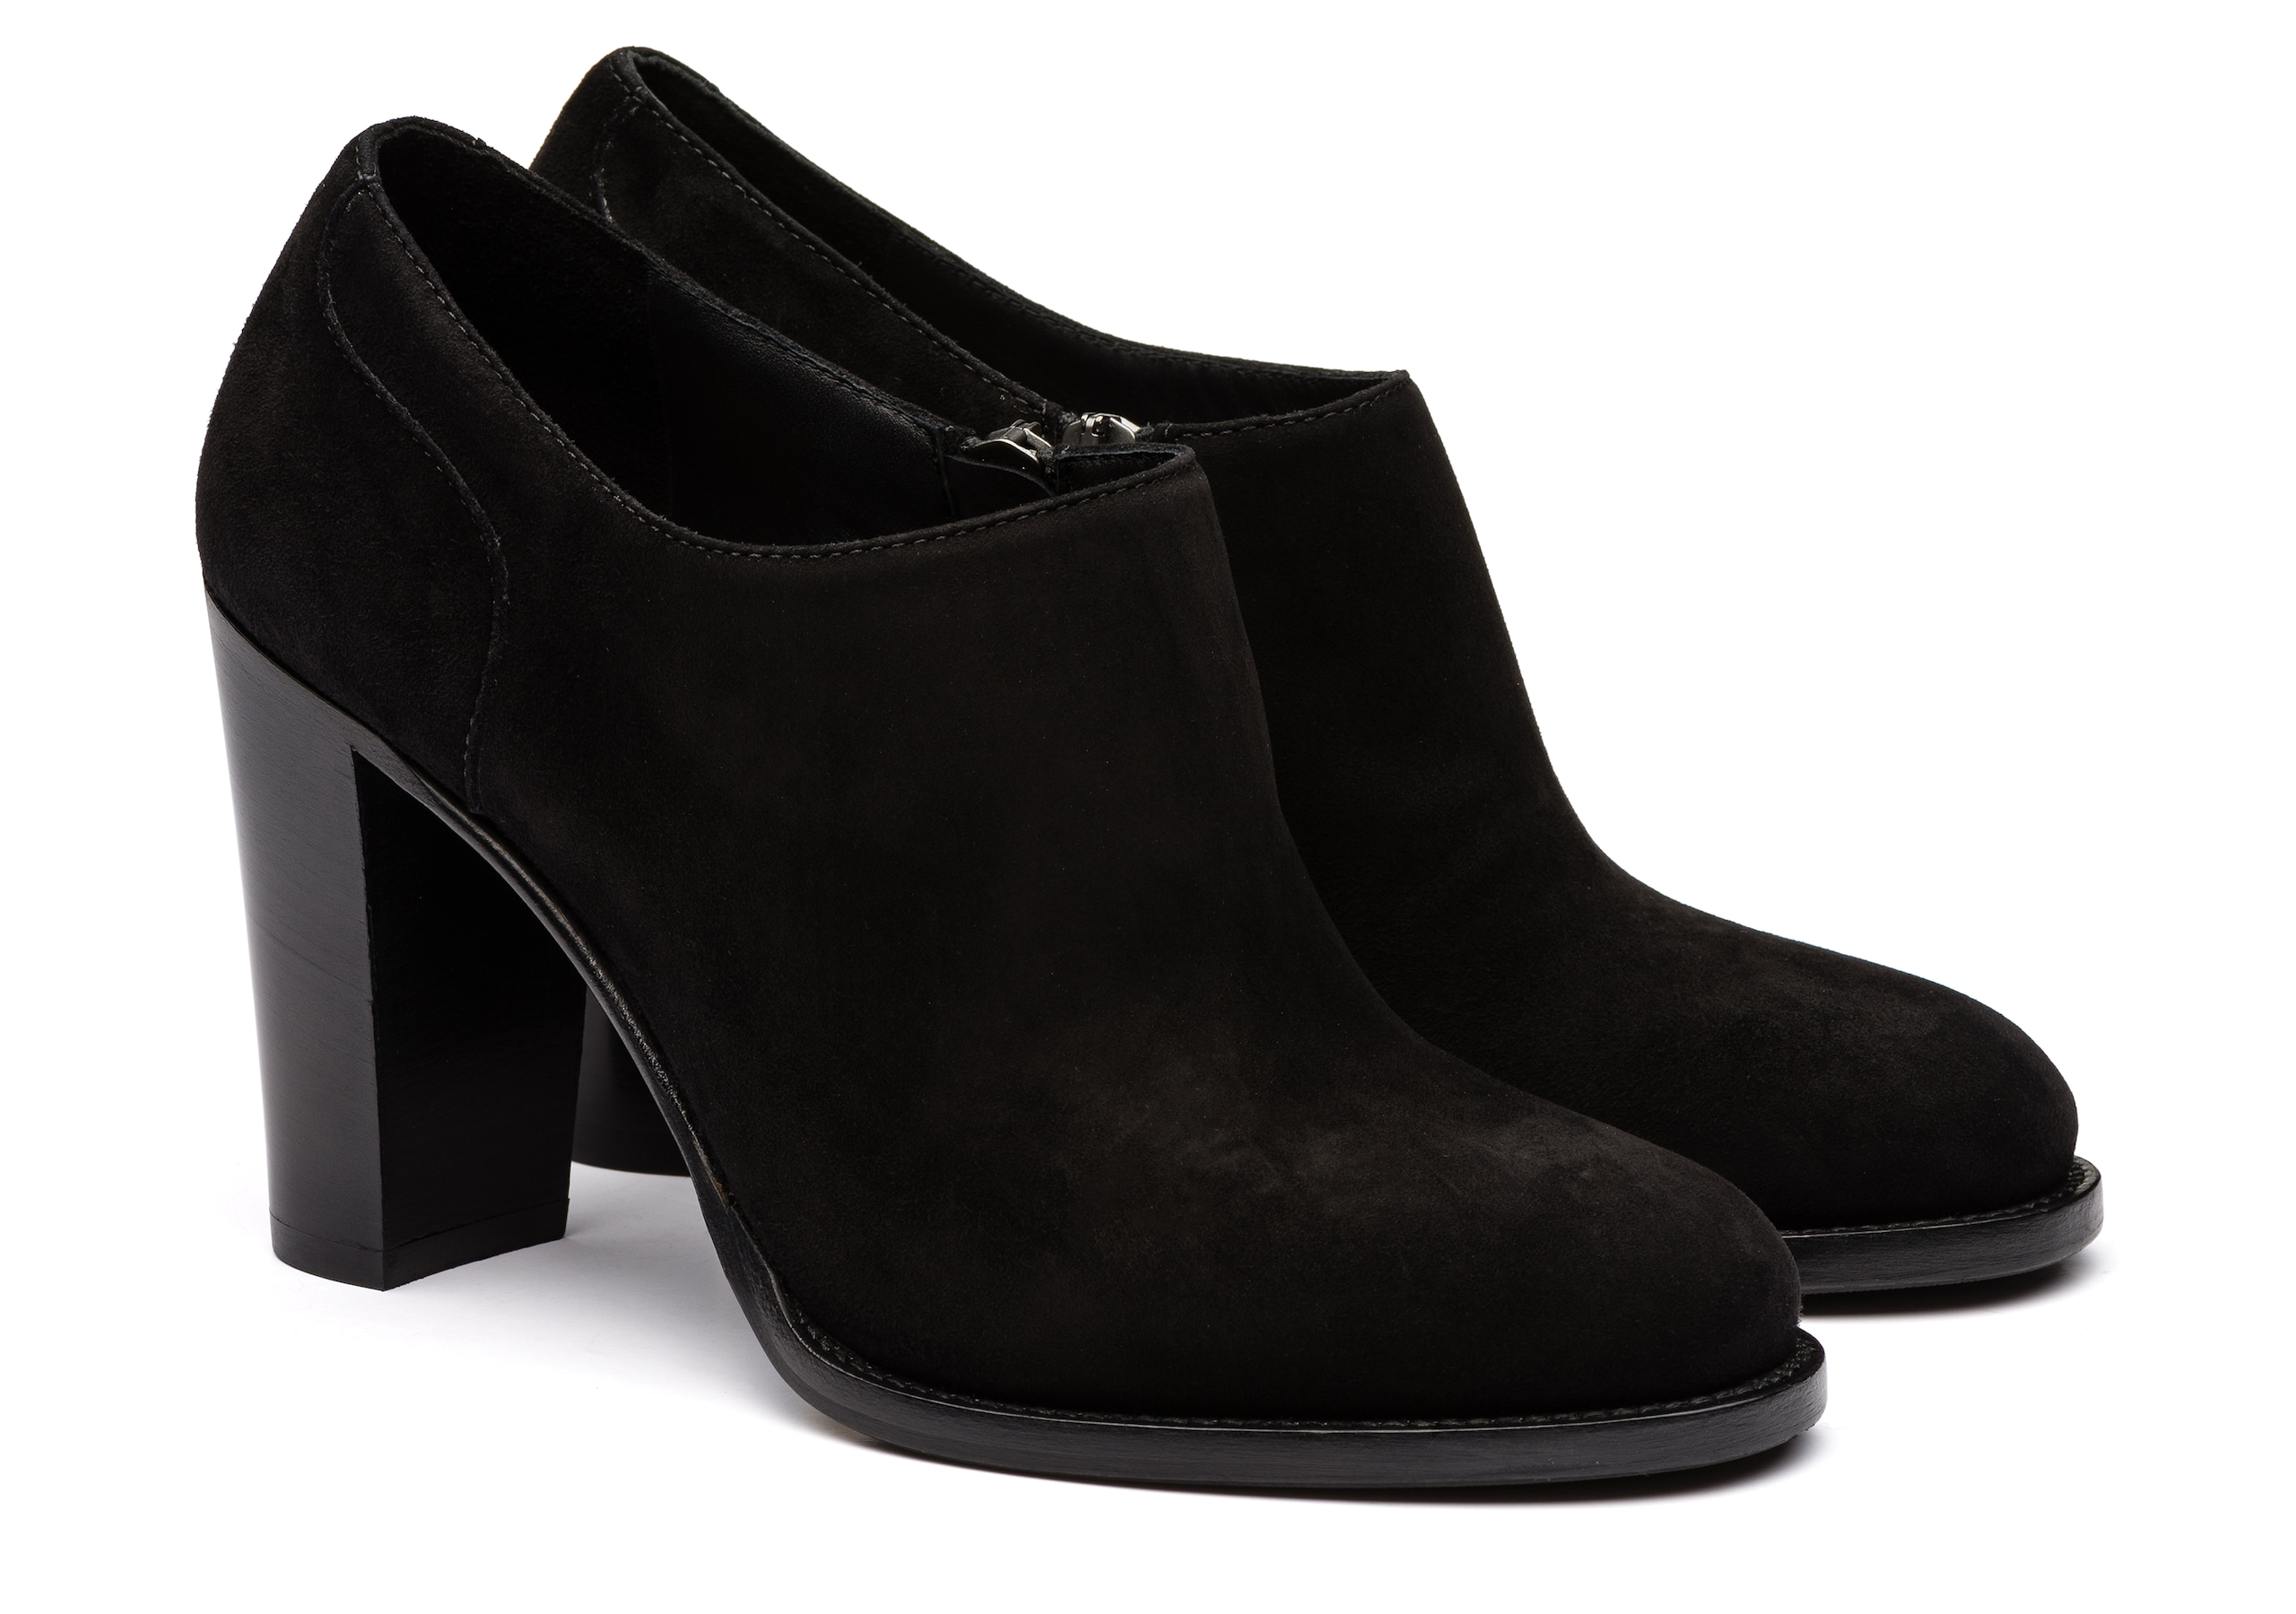 Angie 90 Church's Suede Heeled Shoe Black